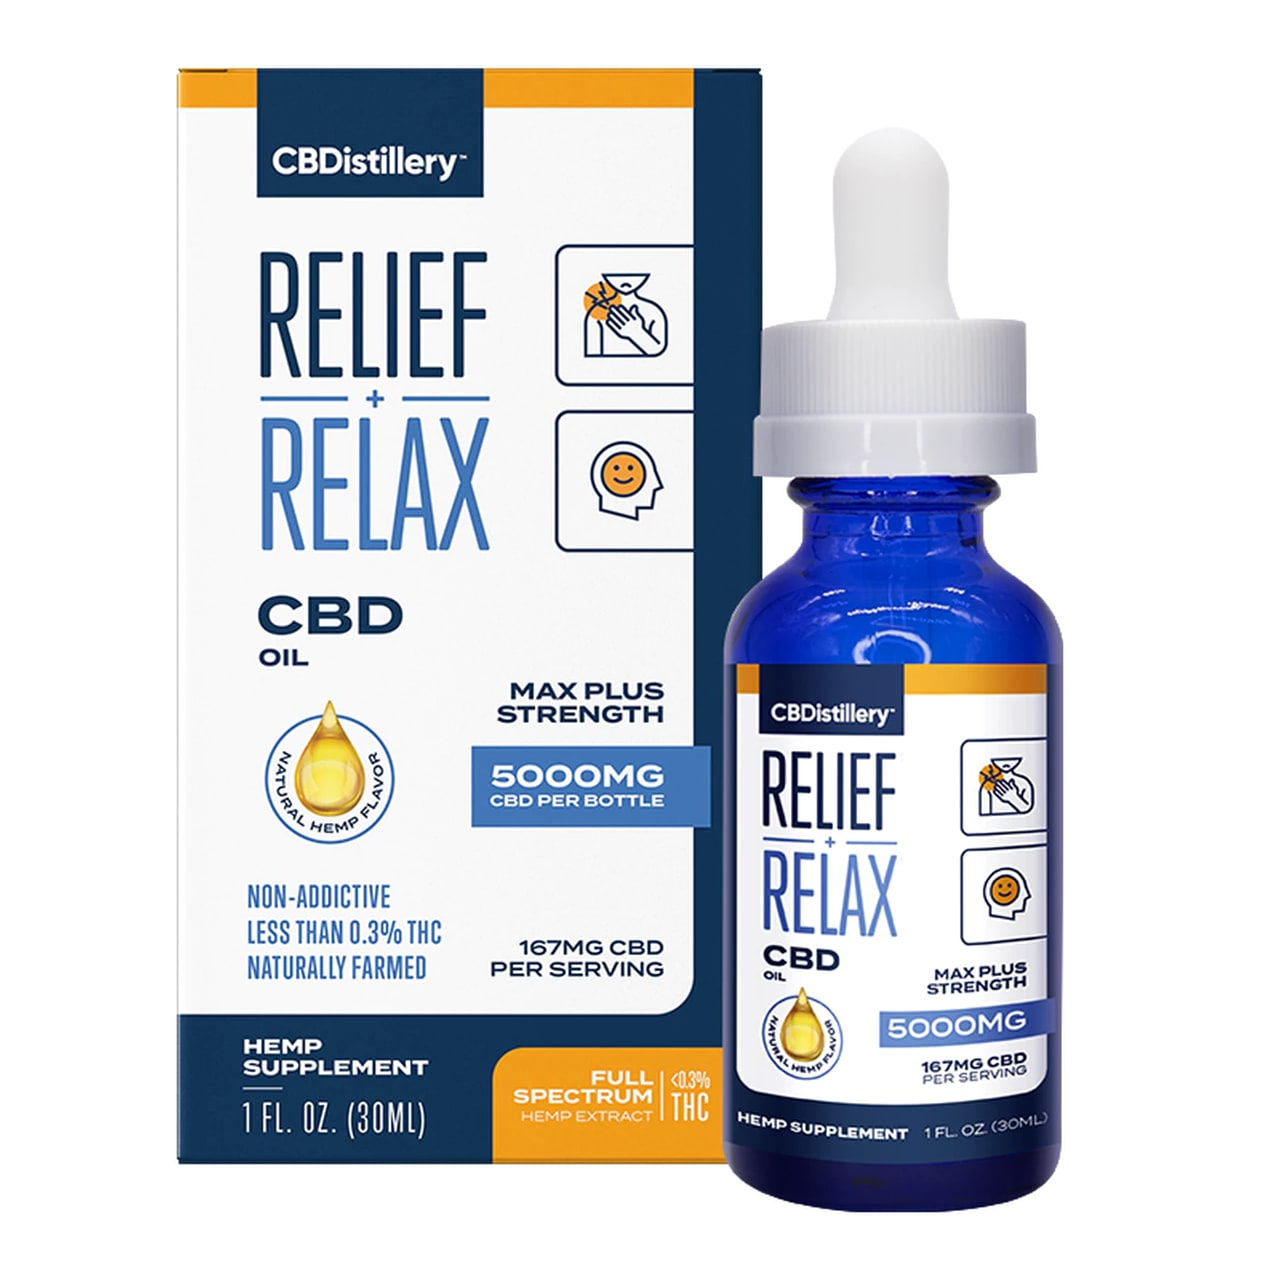 CBDistillery, CBD Oil, Full Spectrum, 1oz, 5000mg of CBD02